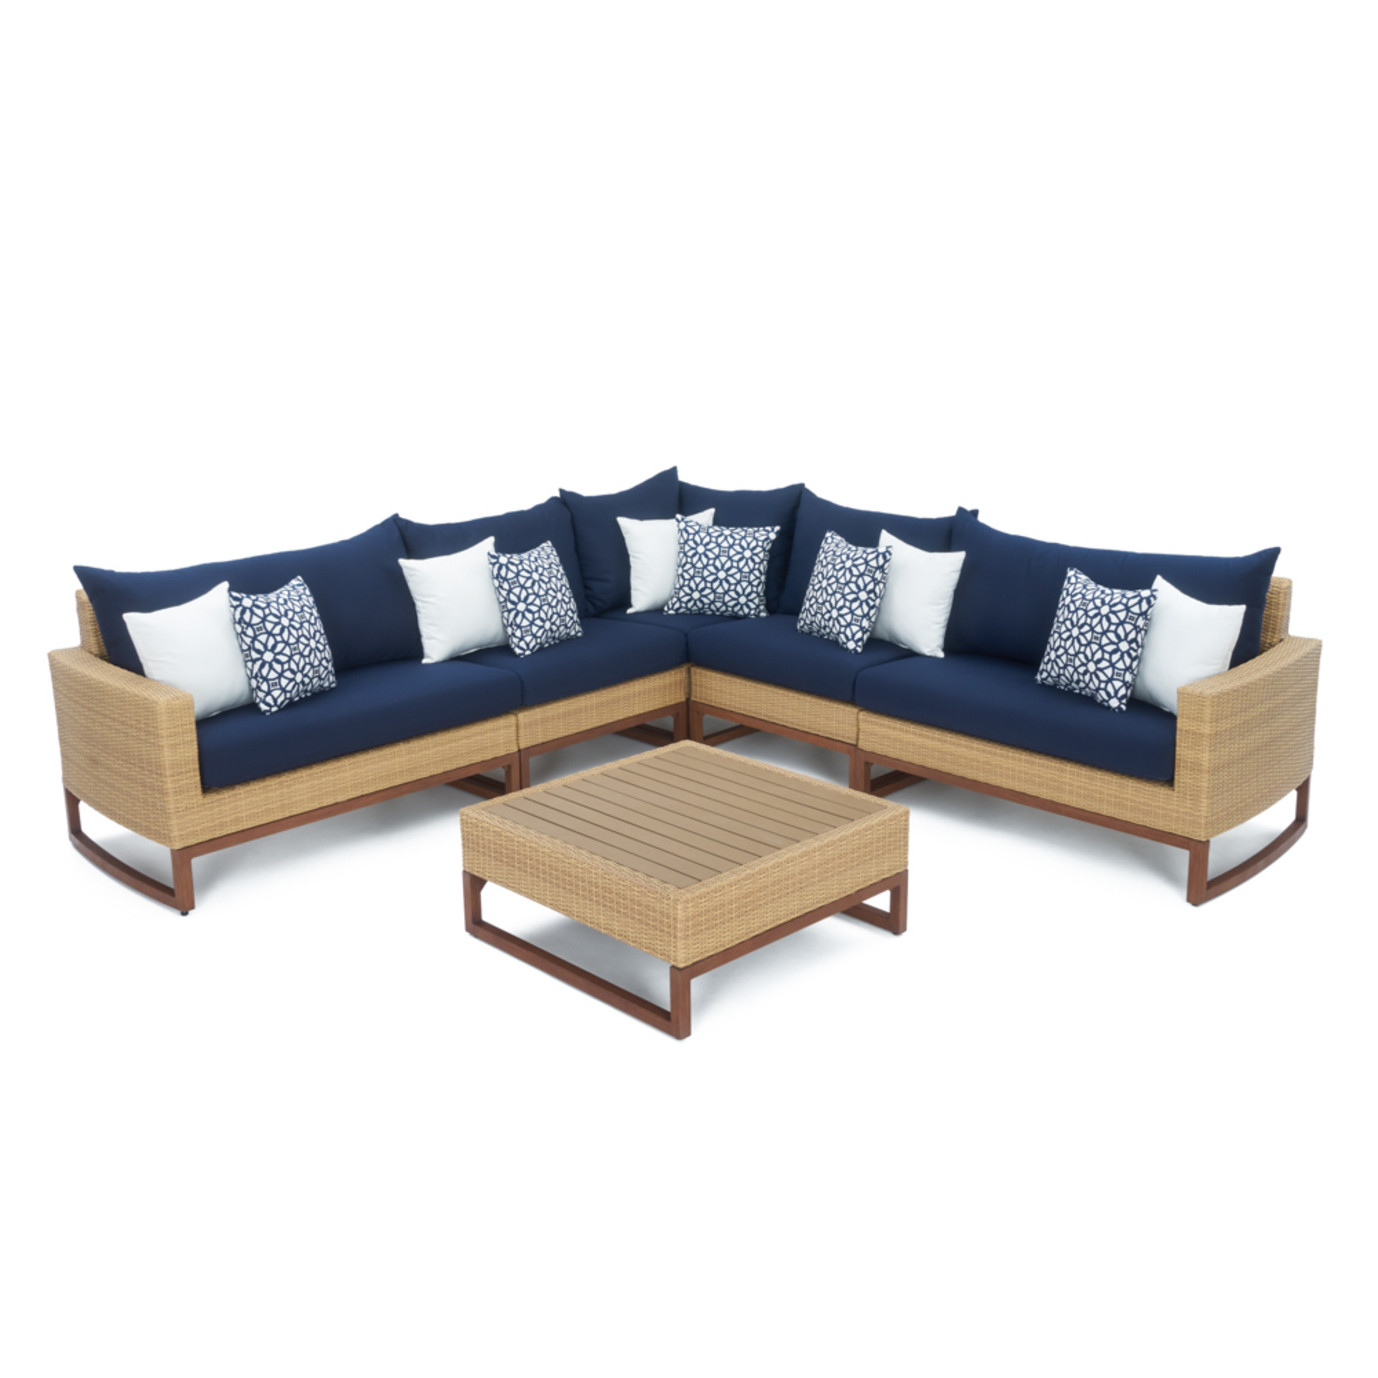 Mili™ 6pc Sofa Sectional - Navy Blue